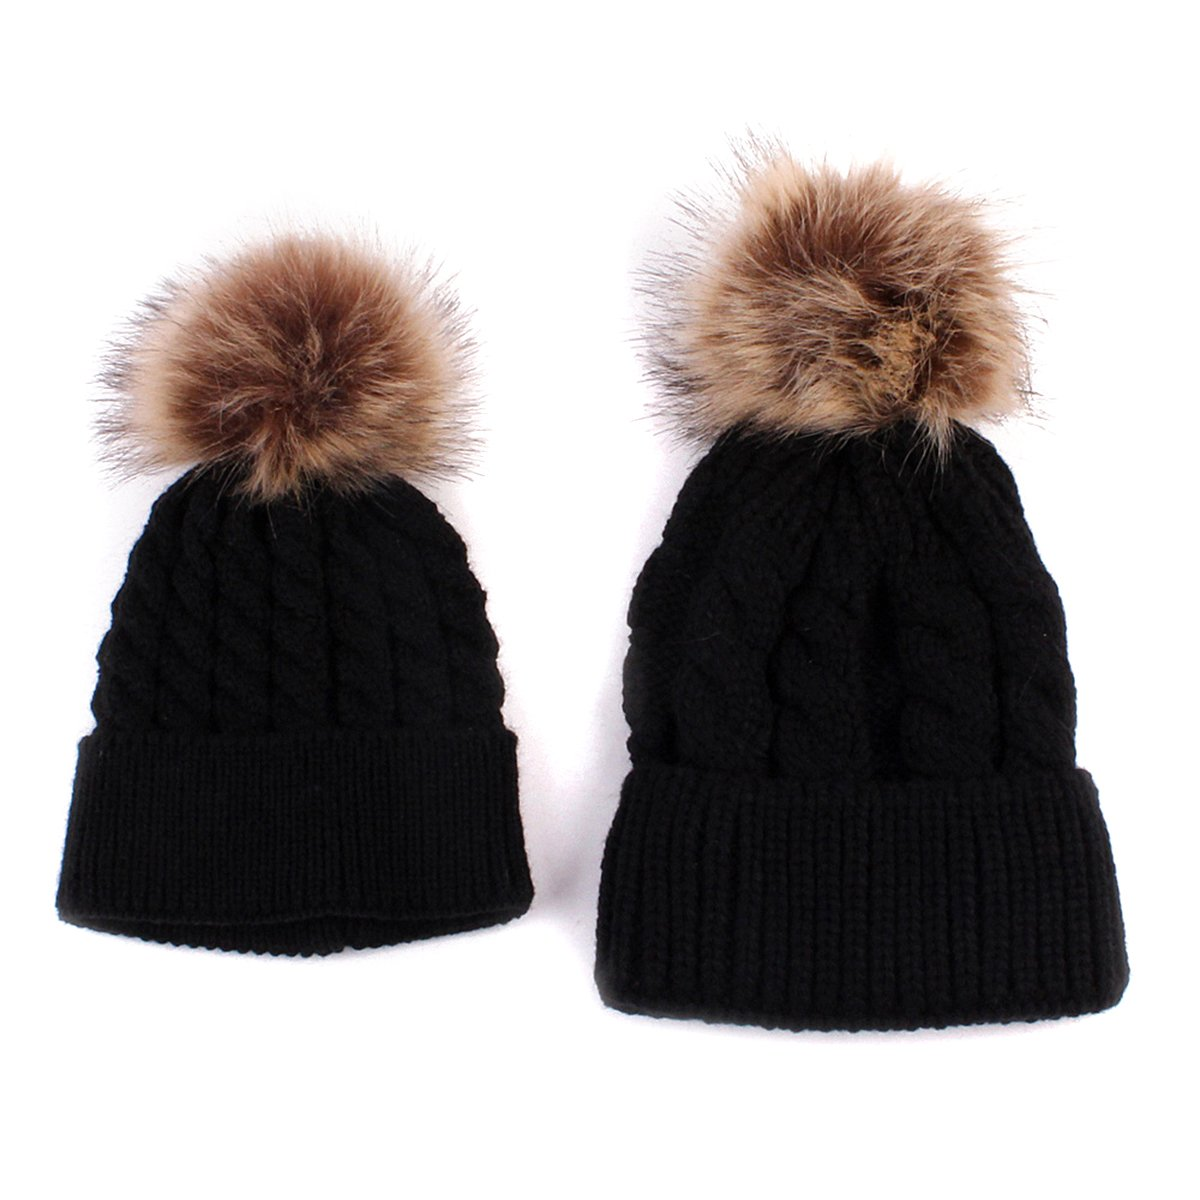 Amazon.com  oenbopo 2PCS Parent-Child Hat Warmer 837bf23040d